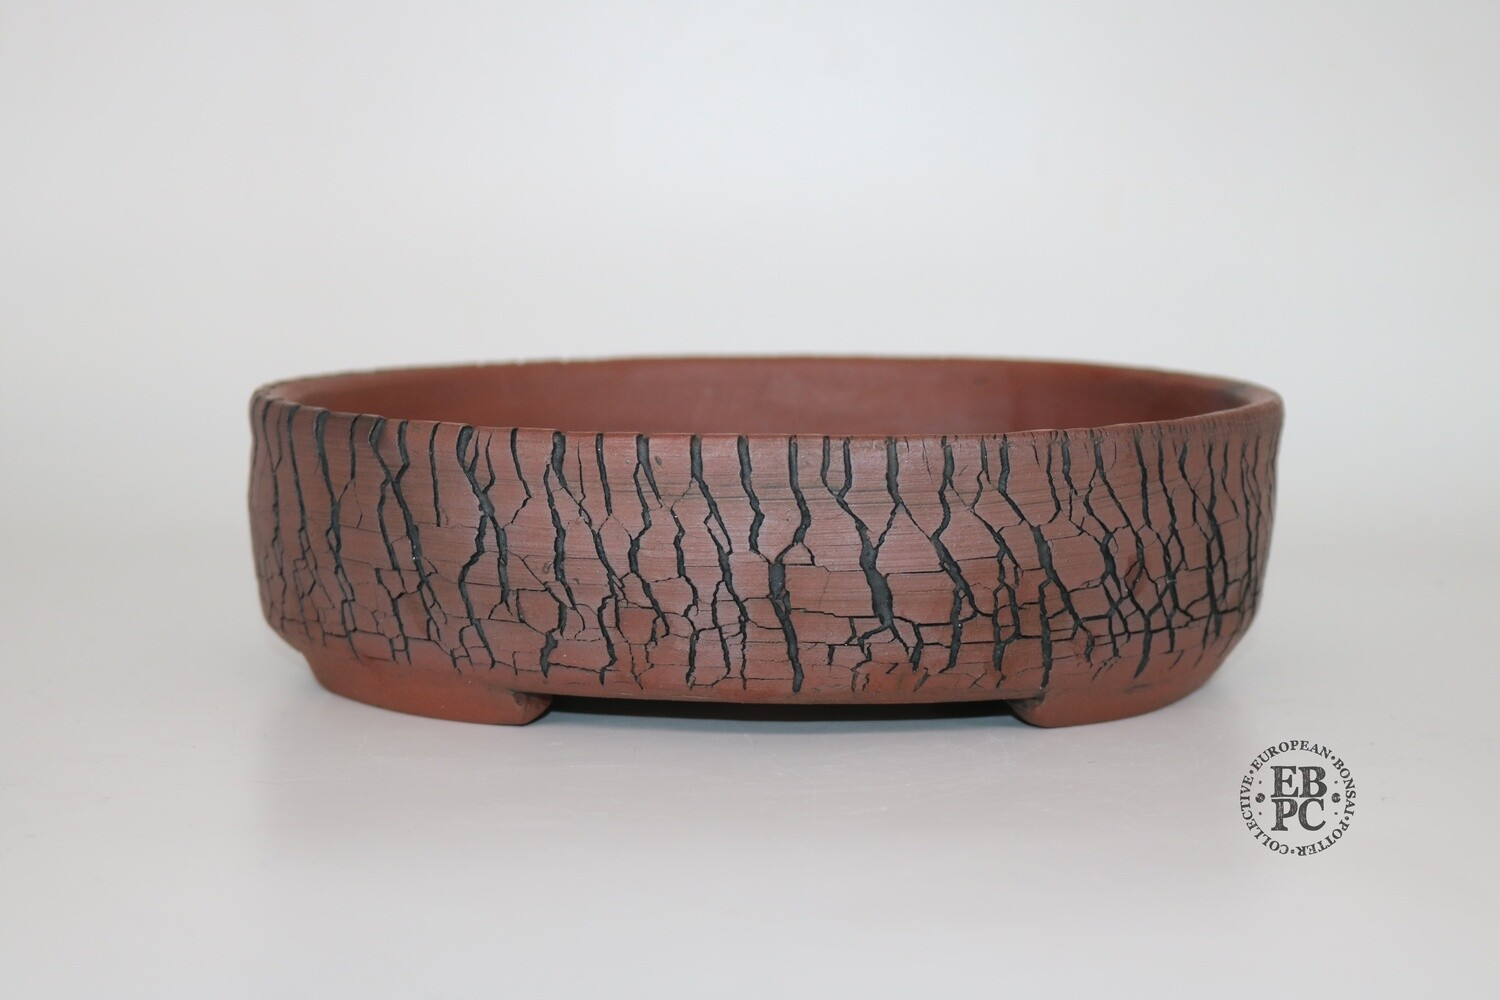 Paul Rogers Ceramics - 22.7cm; Unglazed; Oval; Crackle Finish; Browns; EBPC Stamped;